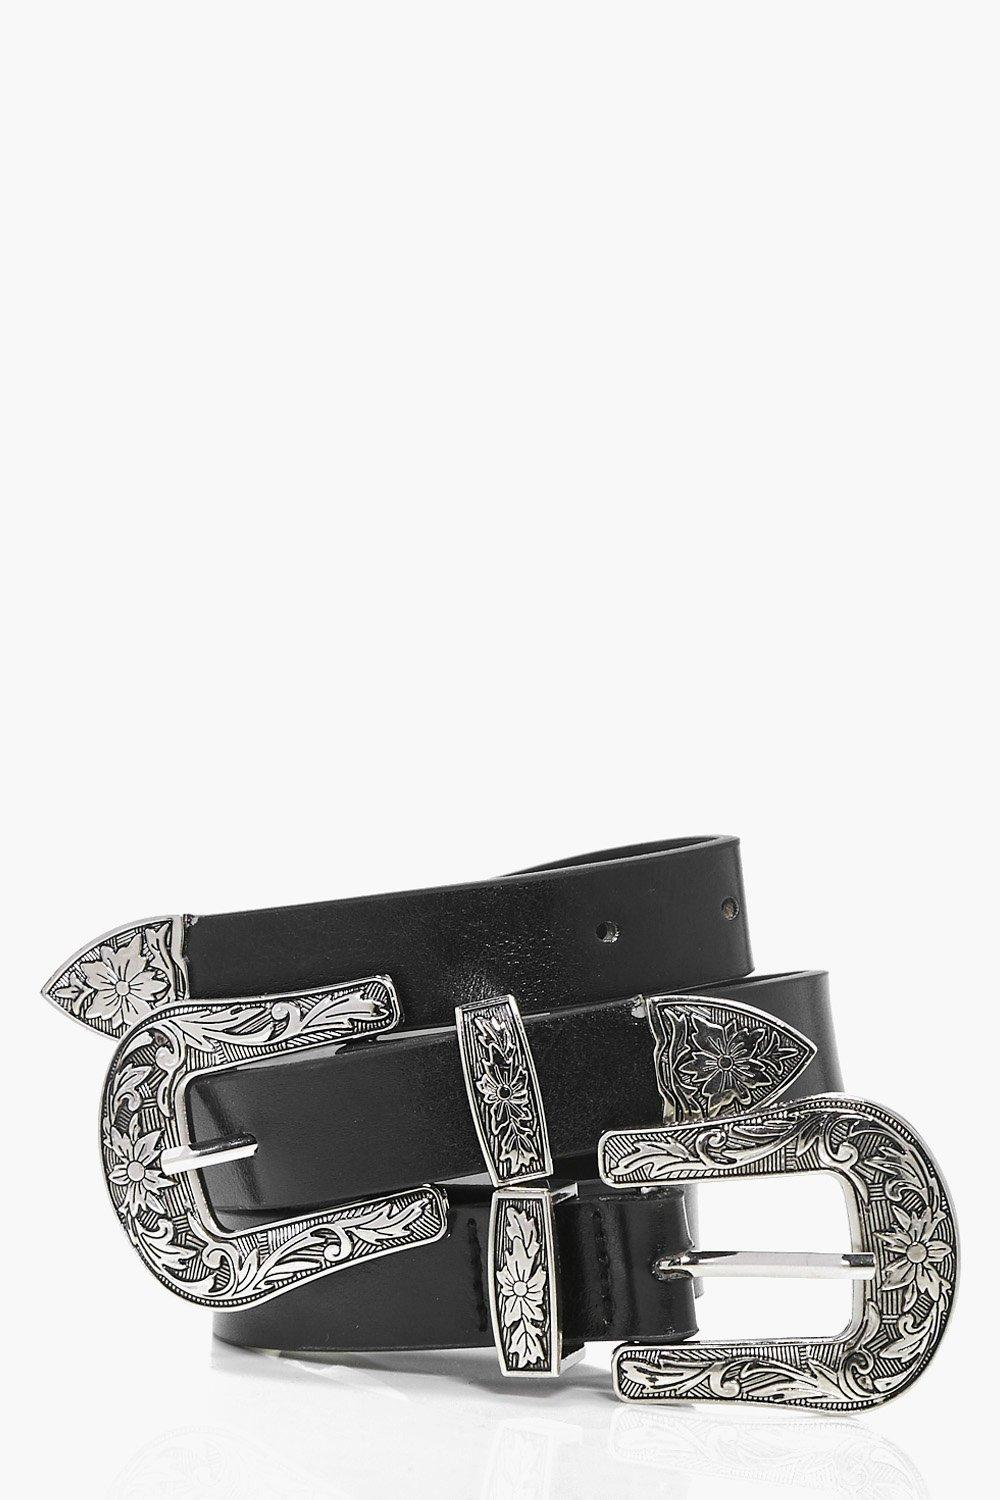 Floral Western Double Buckle Belt - black - Lauren